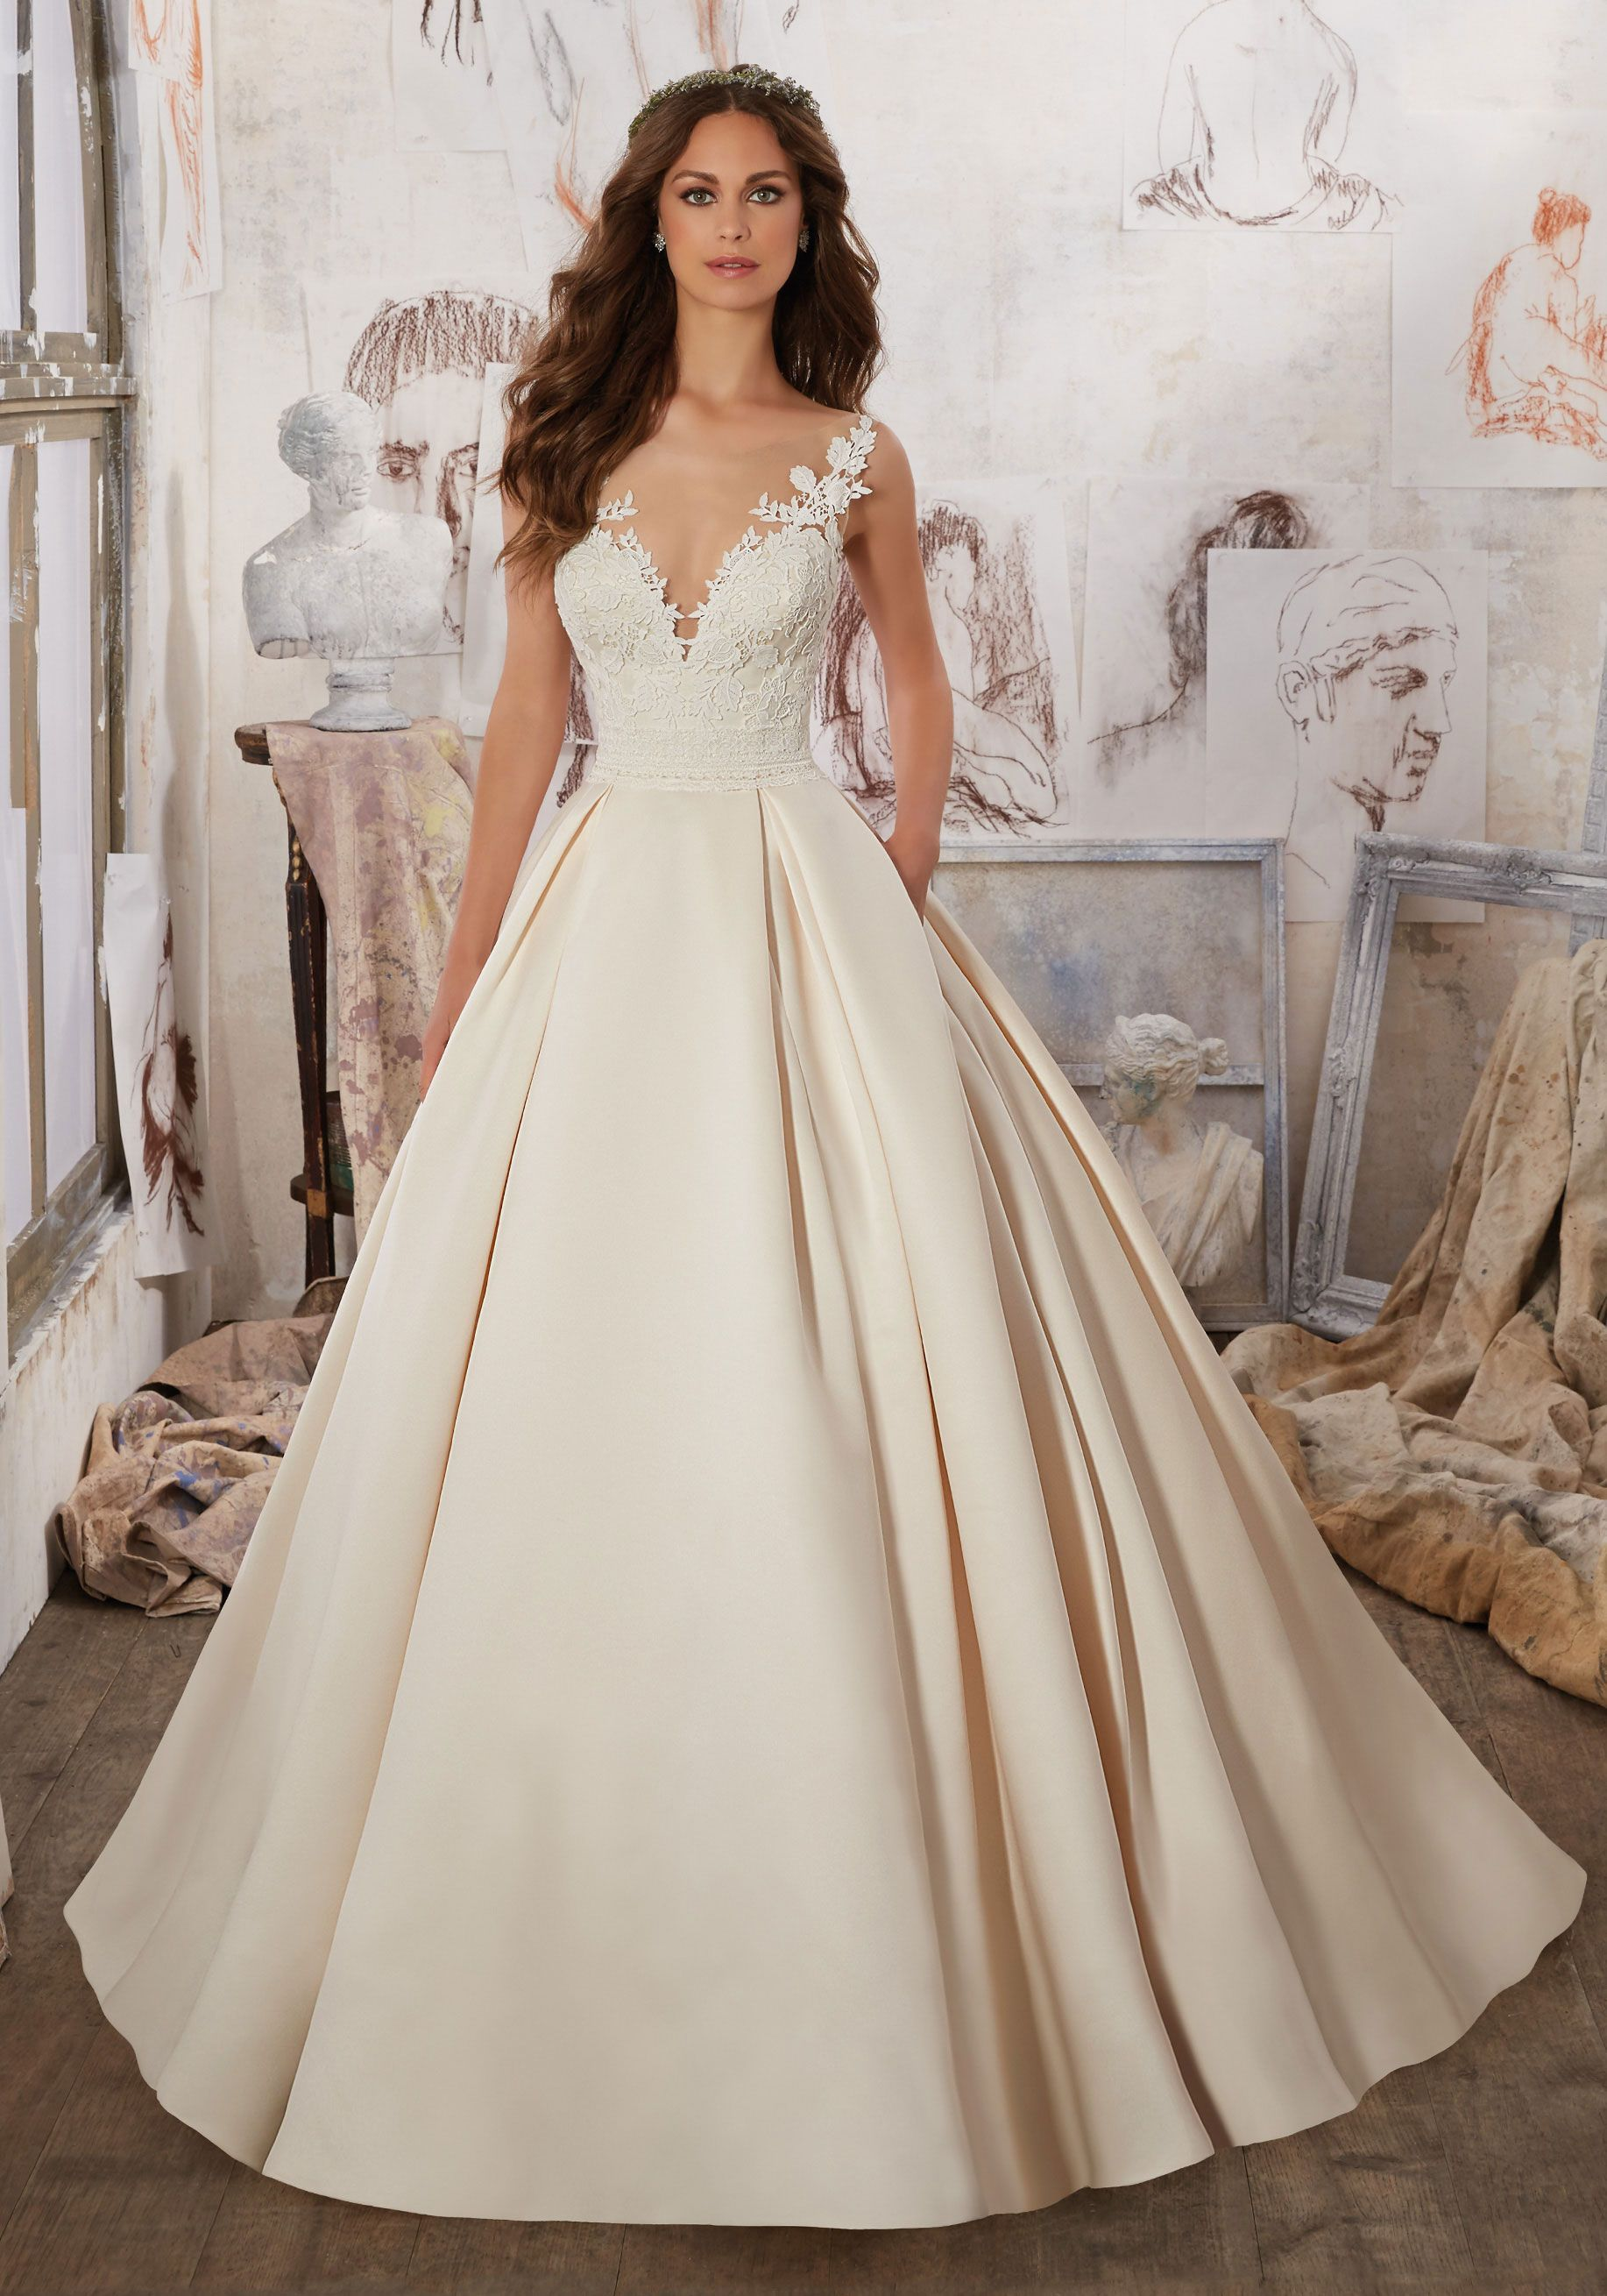 Exquisite guipure lace appliquéŽs and trim adorn the bodice and